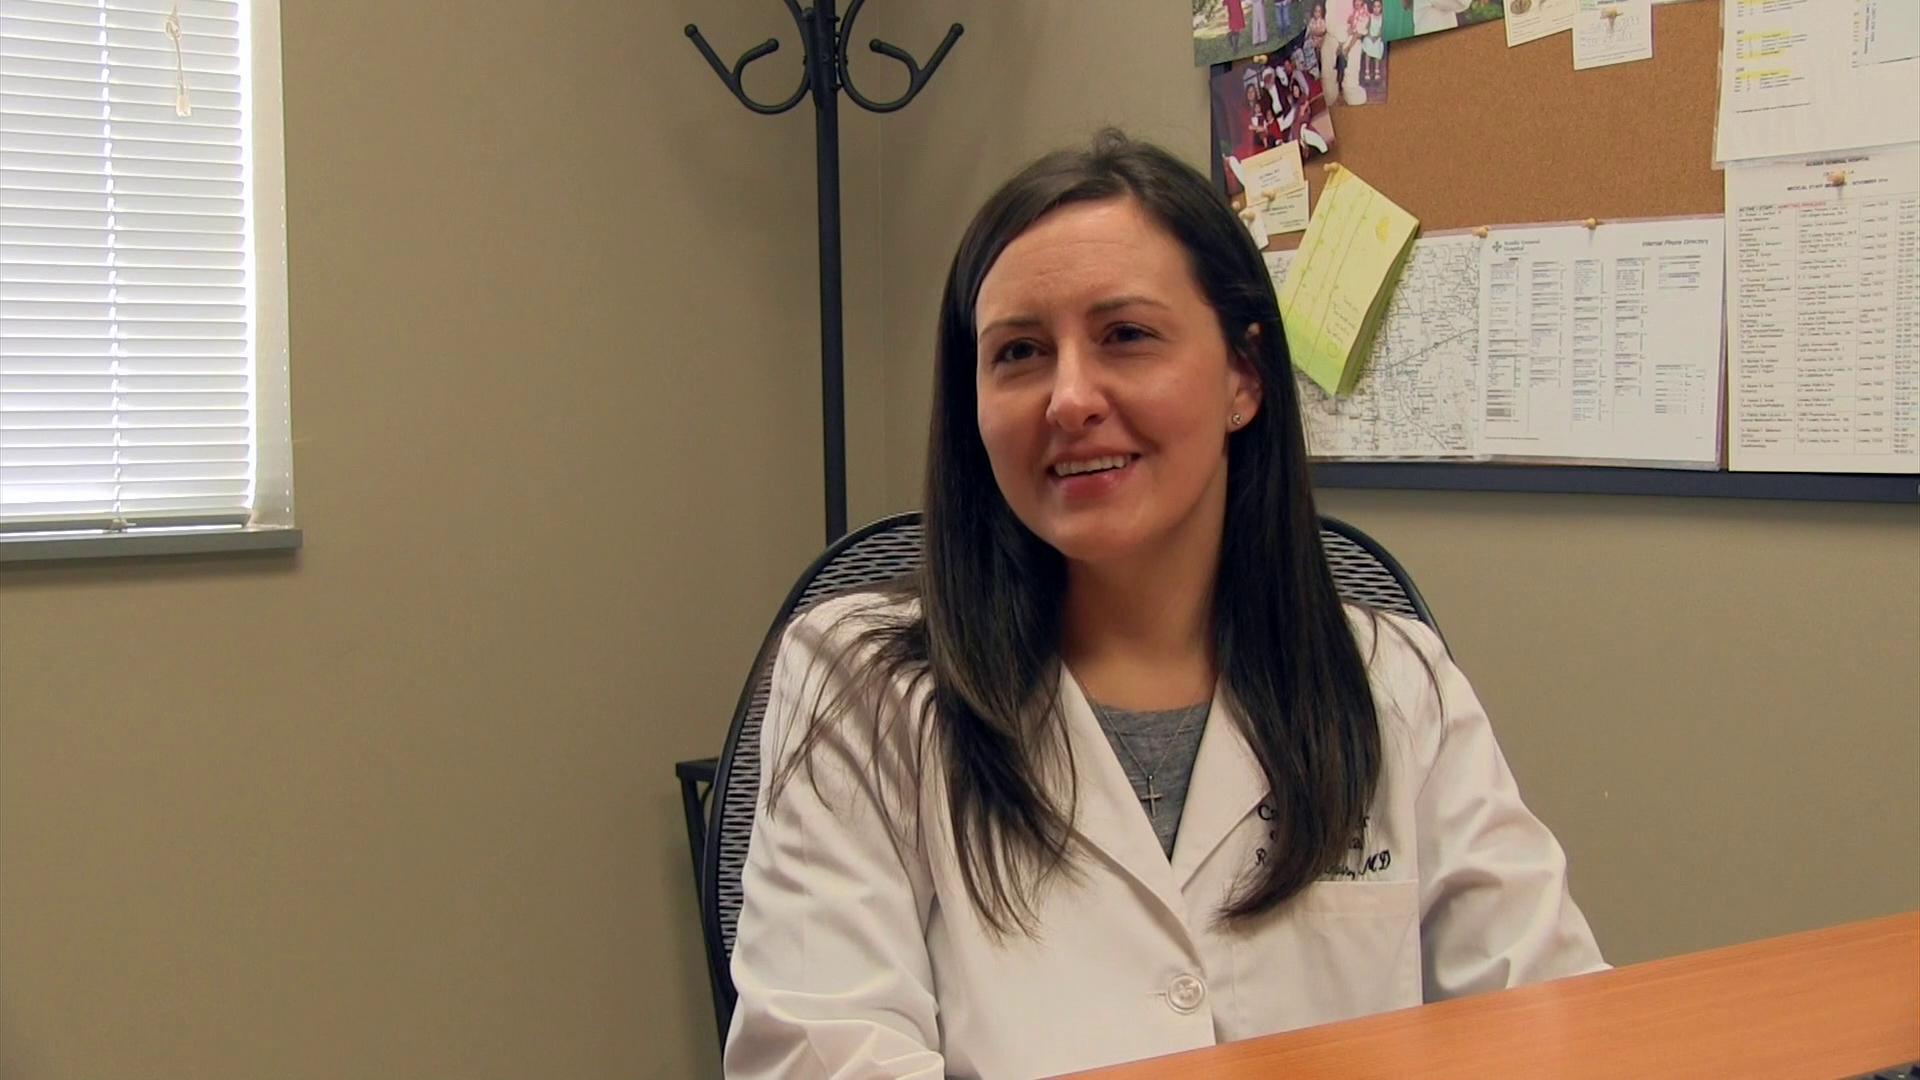 Dr. Roques-Davis talks about her practice